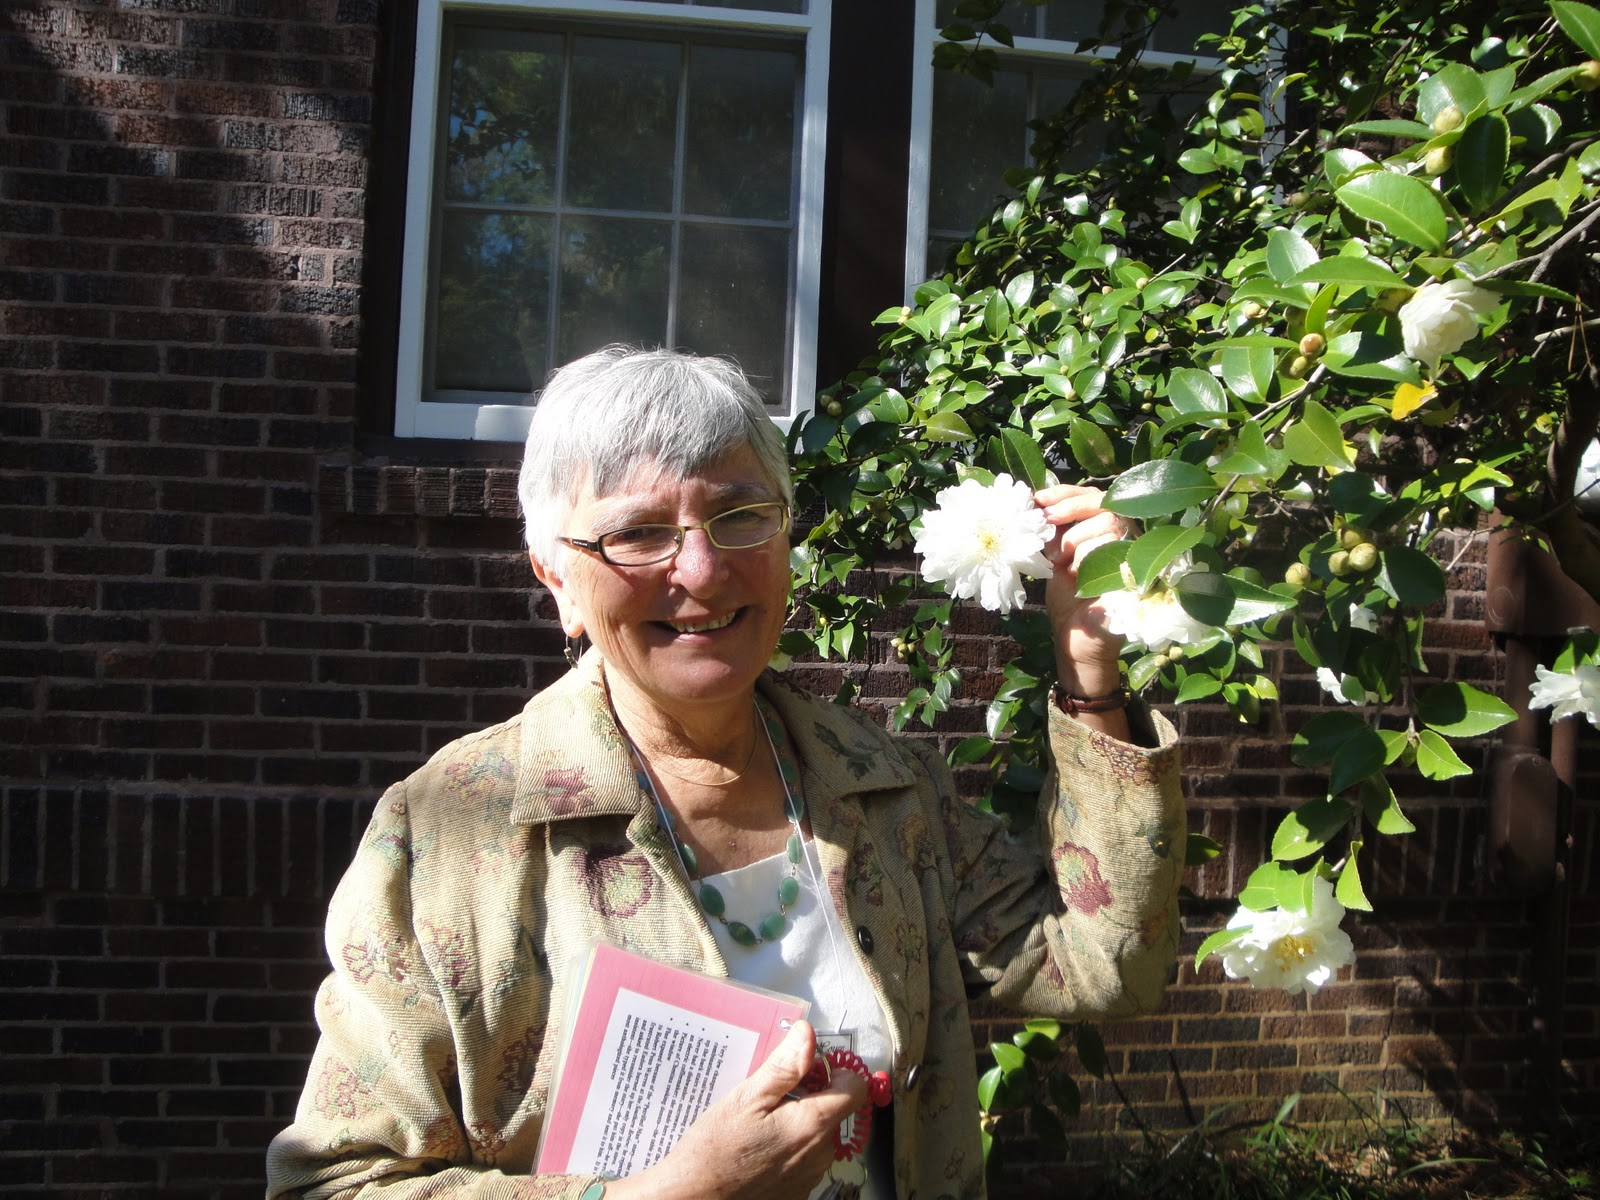 My tour guide at Eudora Welty's house. Ms. Welty loved camellias